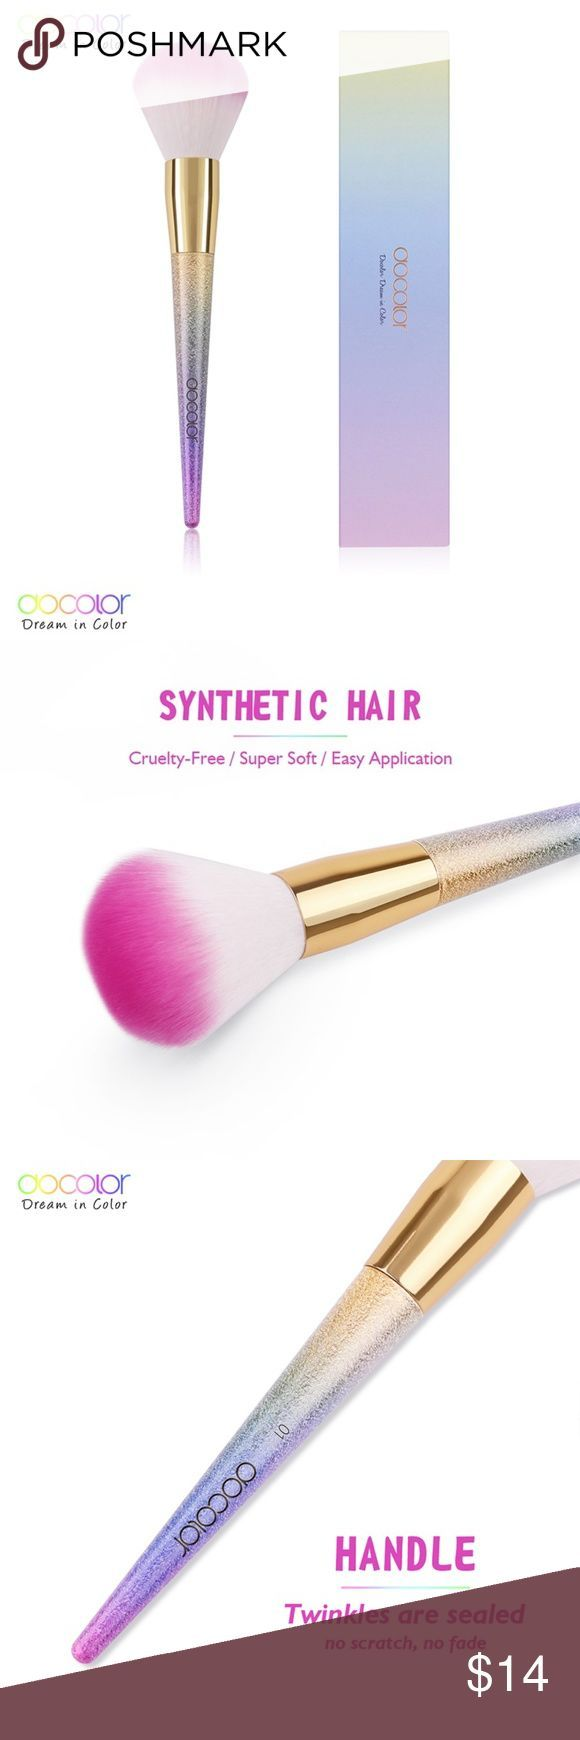 Pro Blush  Bronzer Brush Ombre SuperSoft Rainbow This highquality blushbronzSkincare